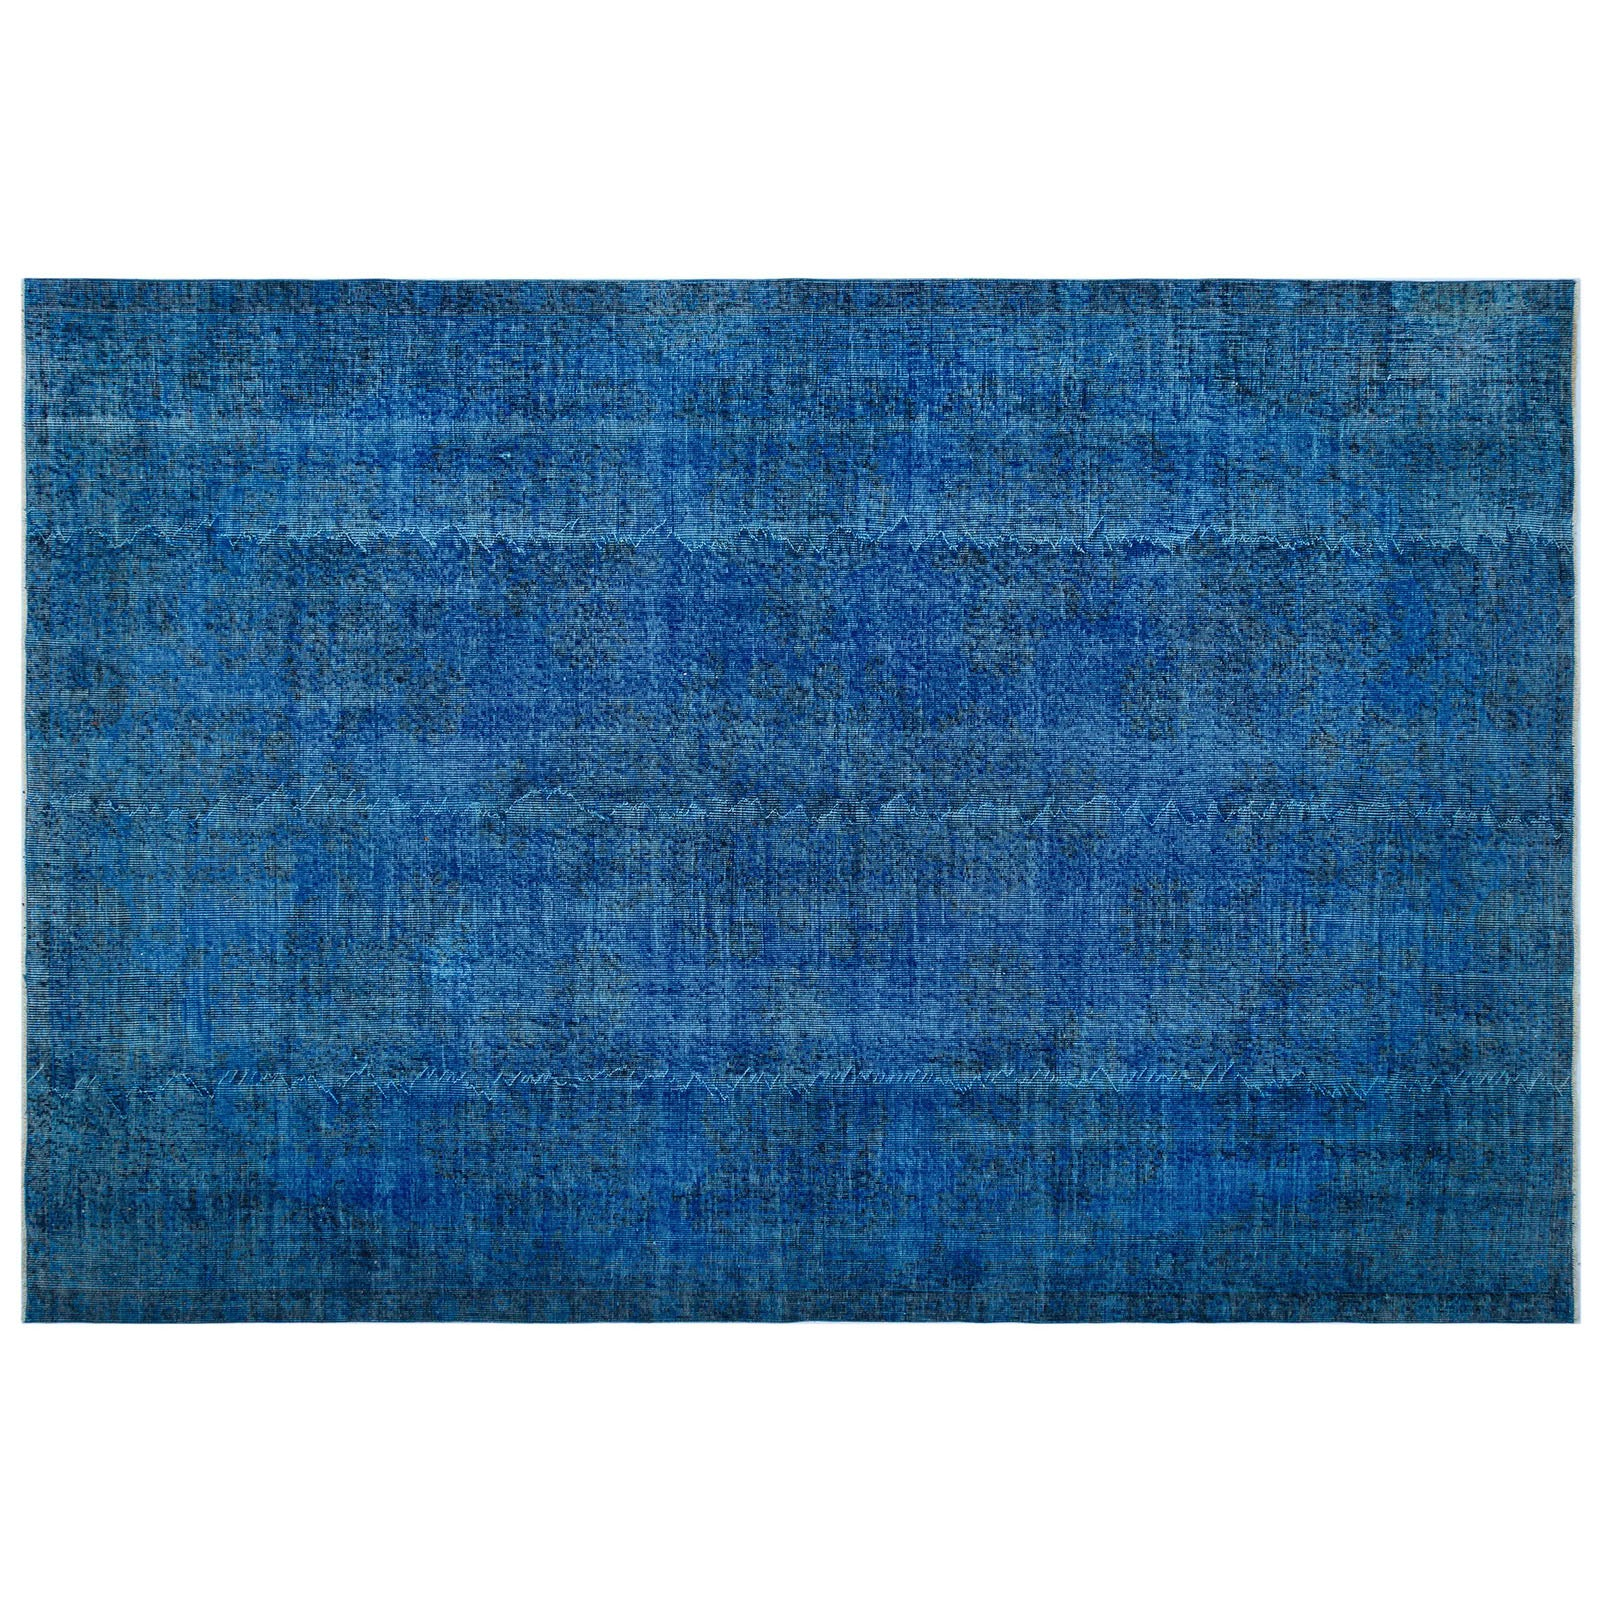 Hali 207X303  CM Bursa Handmade over dyed rug  1244